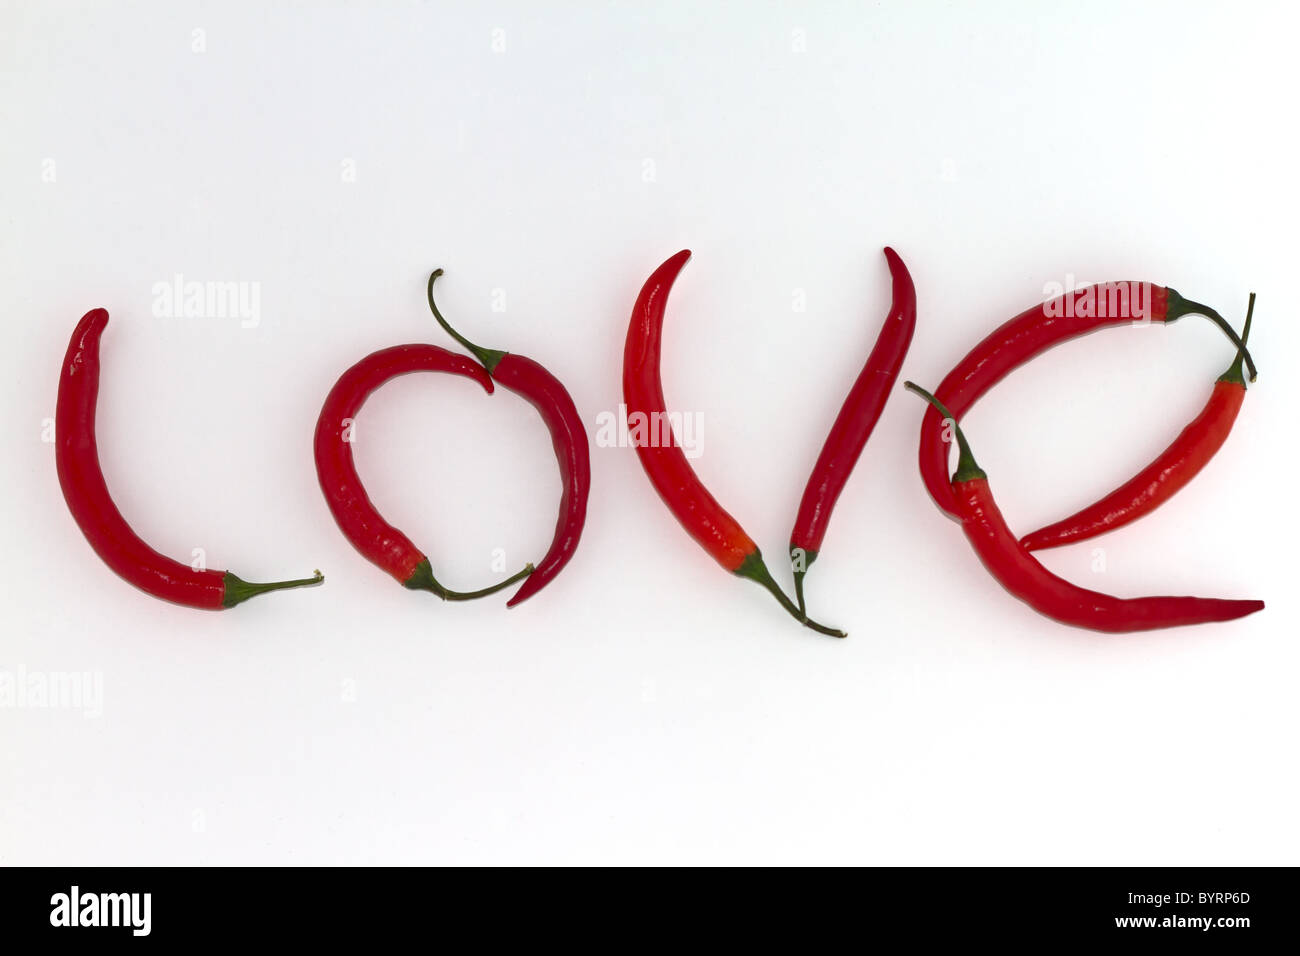 Red hot chili peppers arranged as the word LOVE on white background - Stock Image